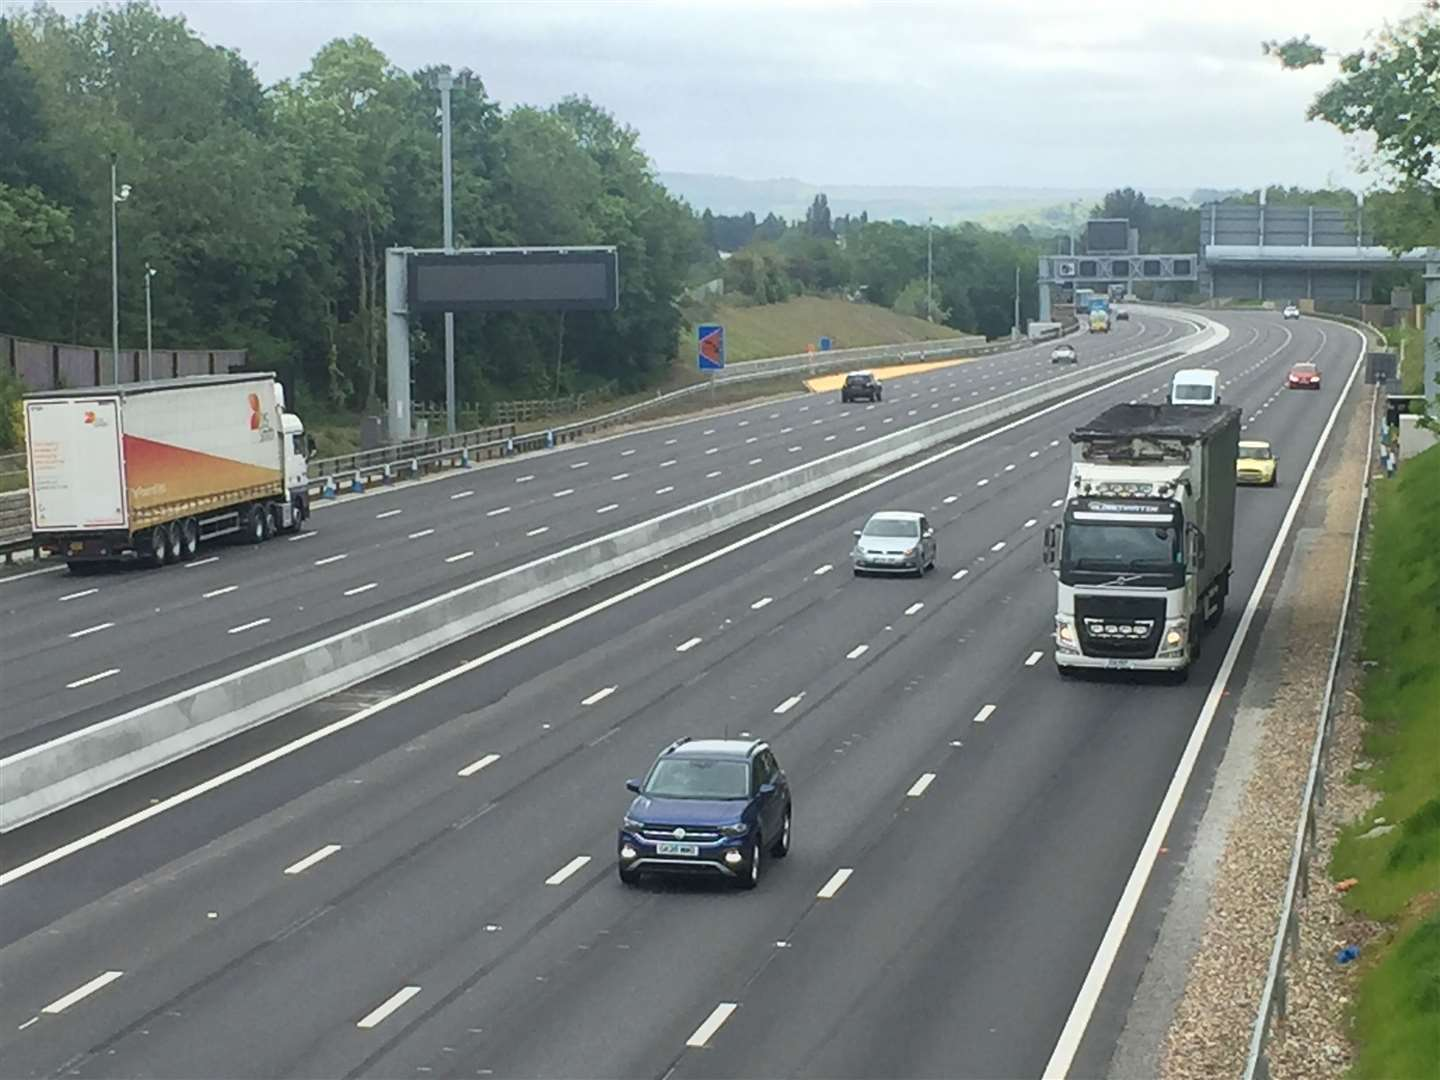 The recently-finished smart motorway section of the M20